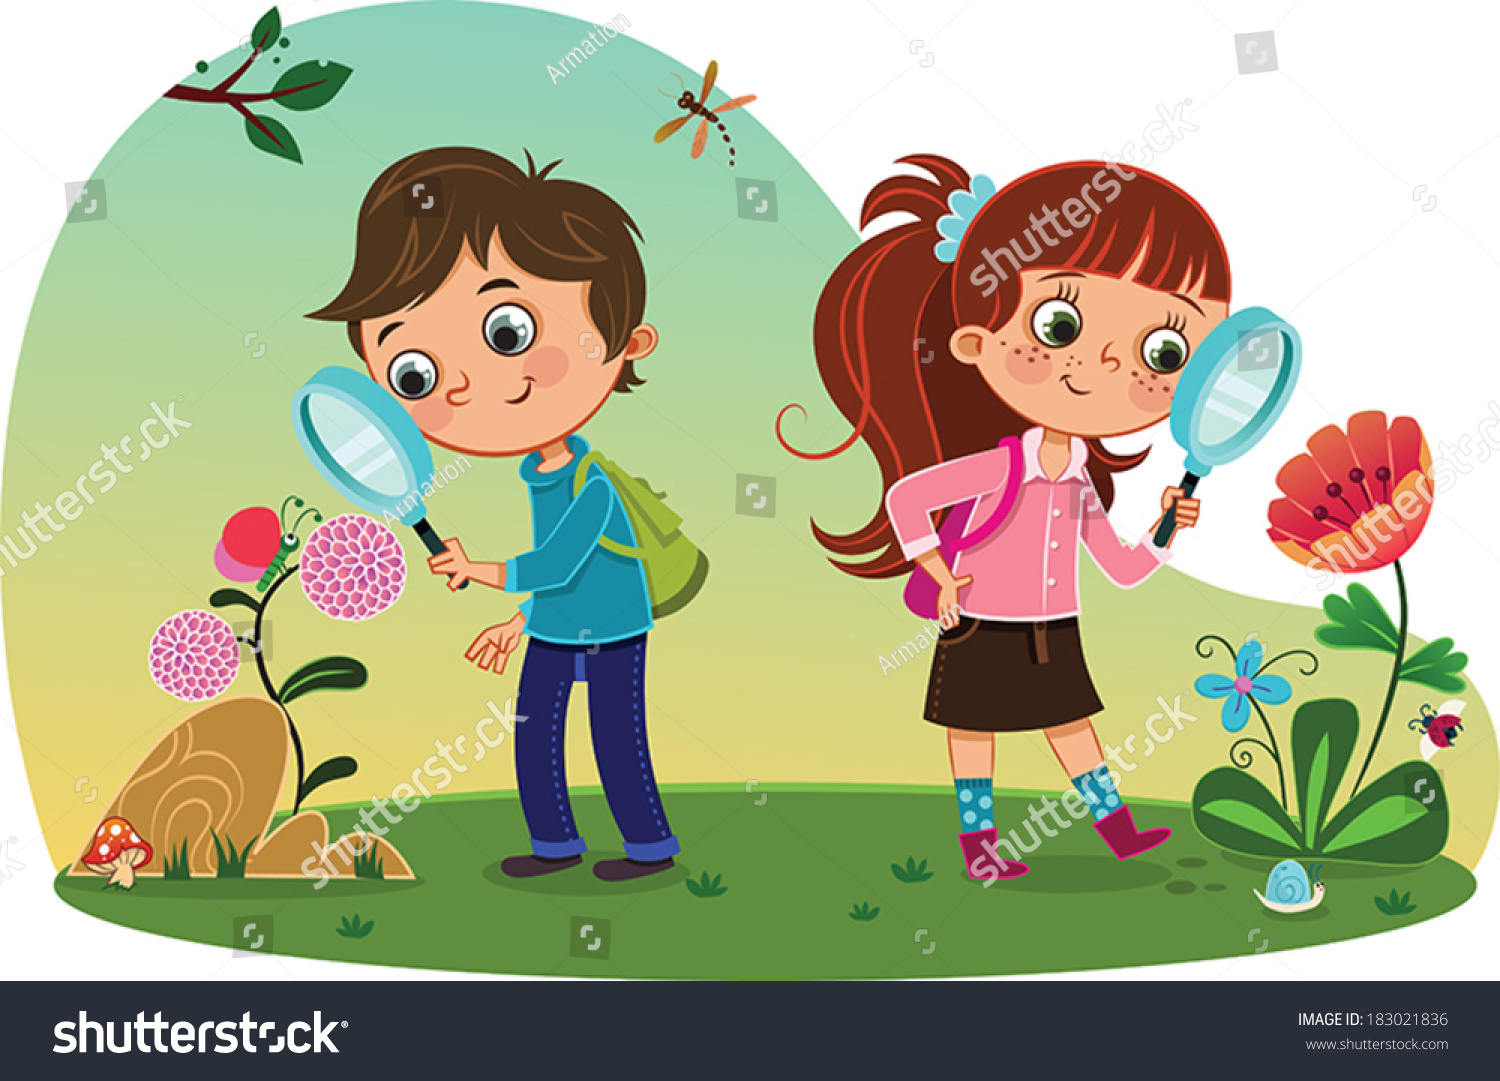 Kids going for a nature walk clipart banner Nature walk clipart 7 » Clipart Station banner